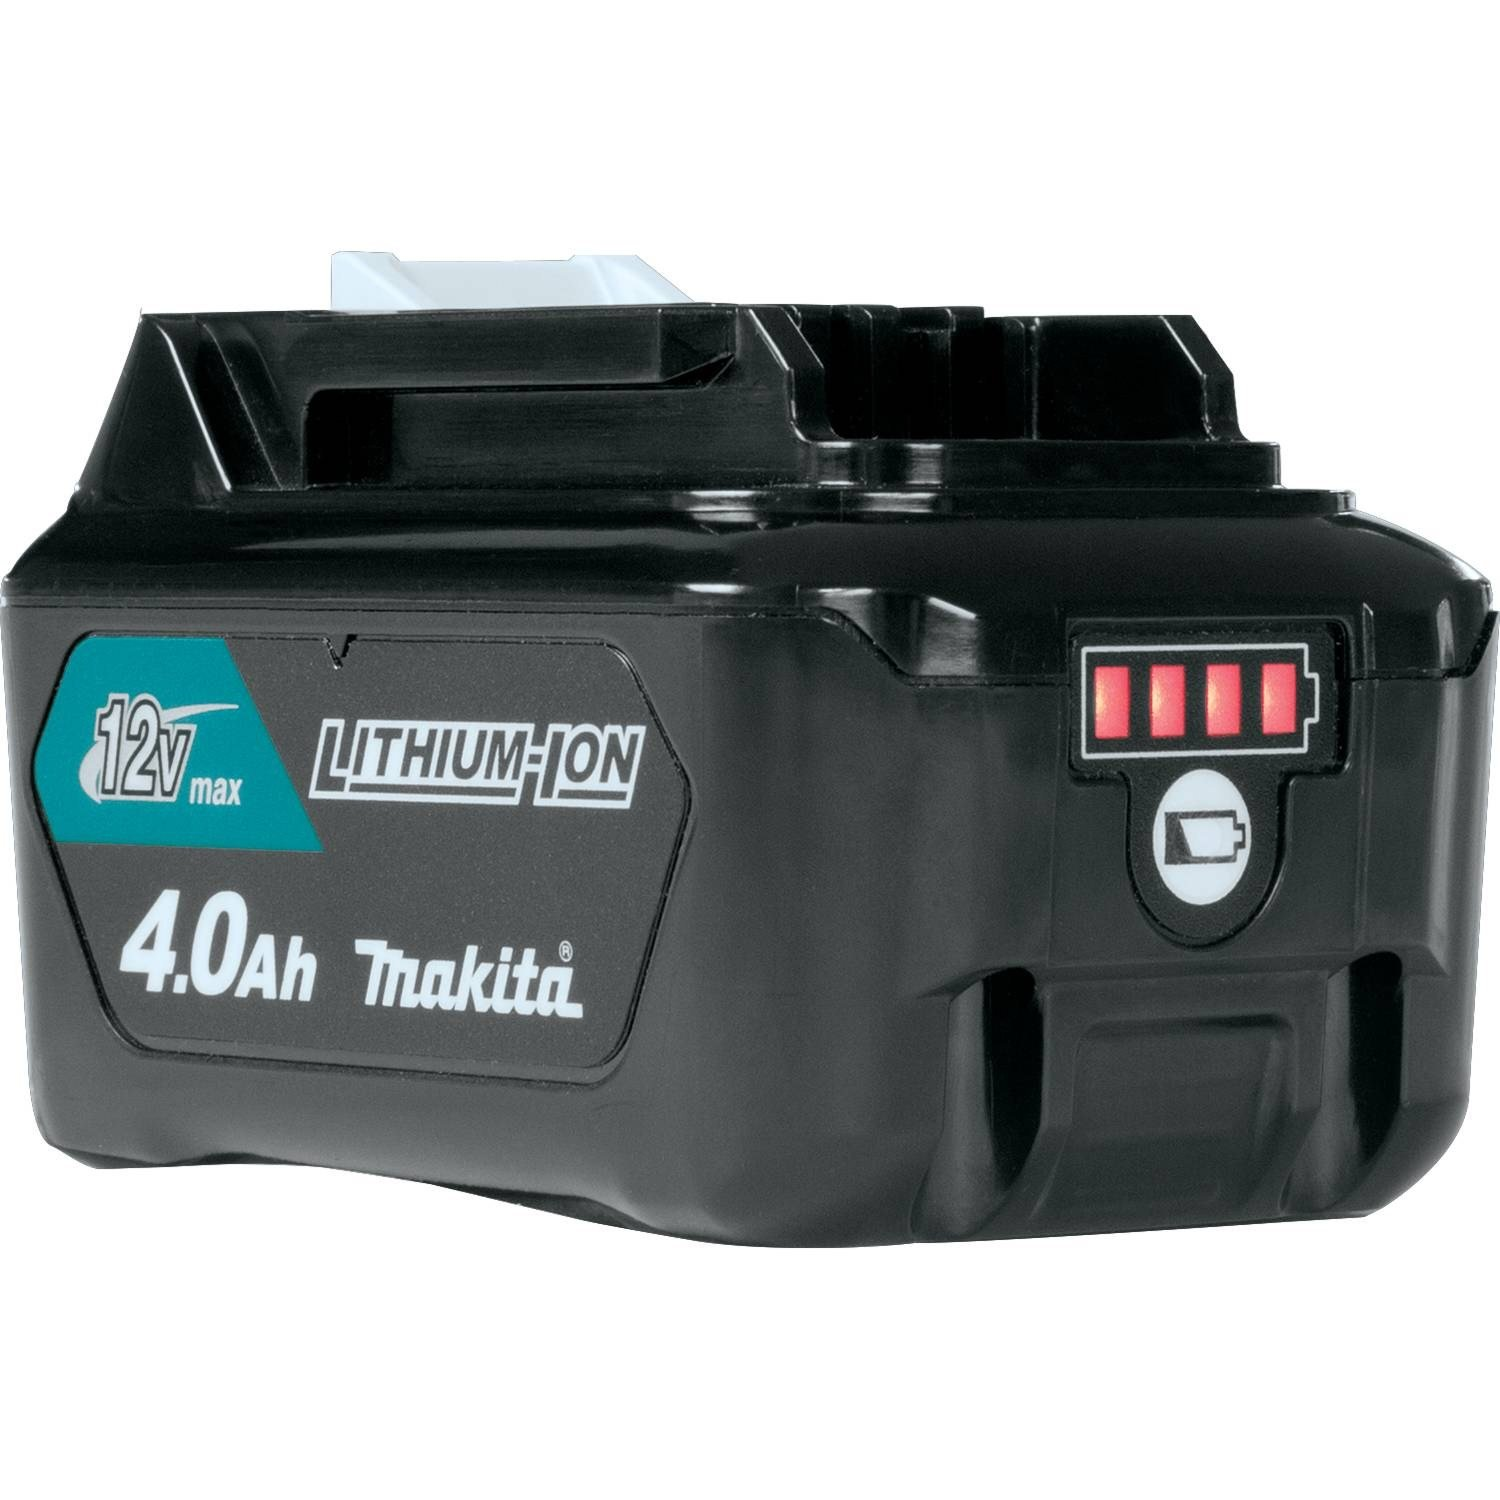 Makita BL1041B-2  12V max CXT Lithium-Ion 4.0 Amp Battery (2 Pack) by Makita (Image #6)